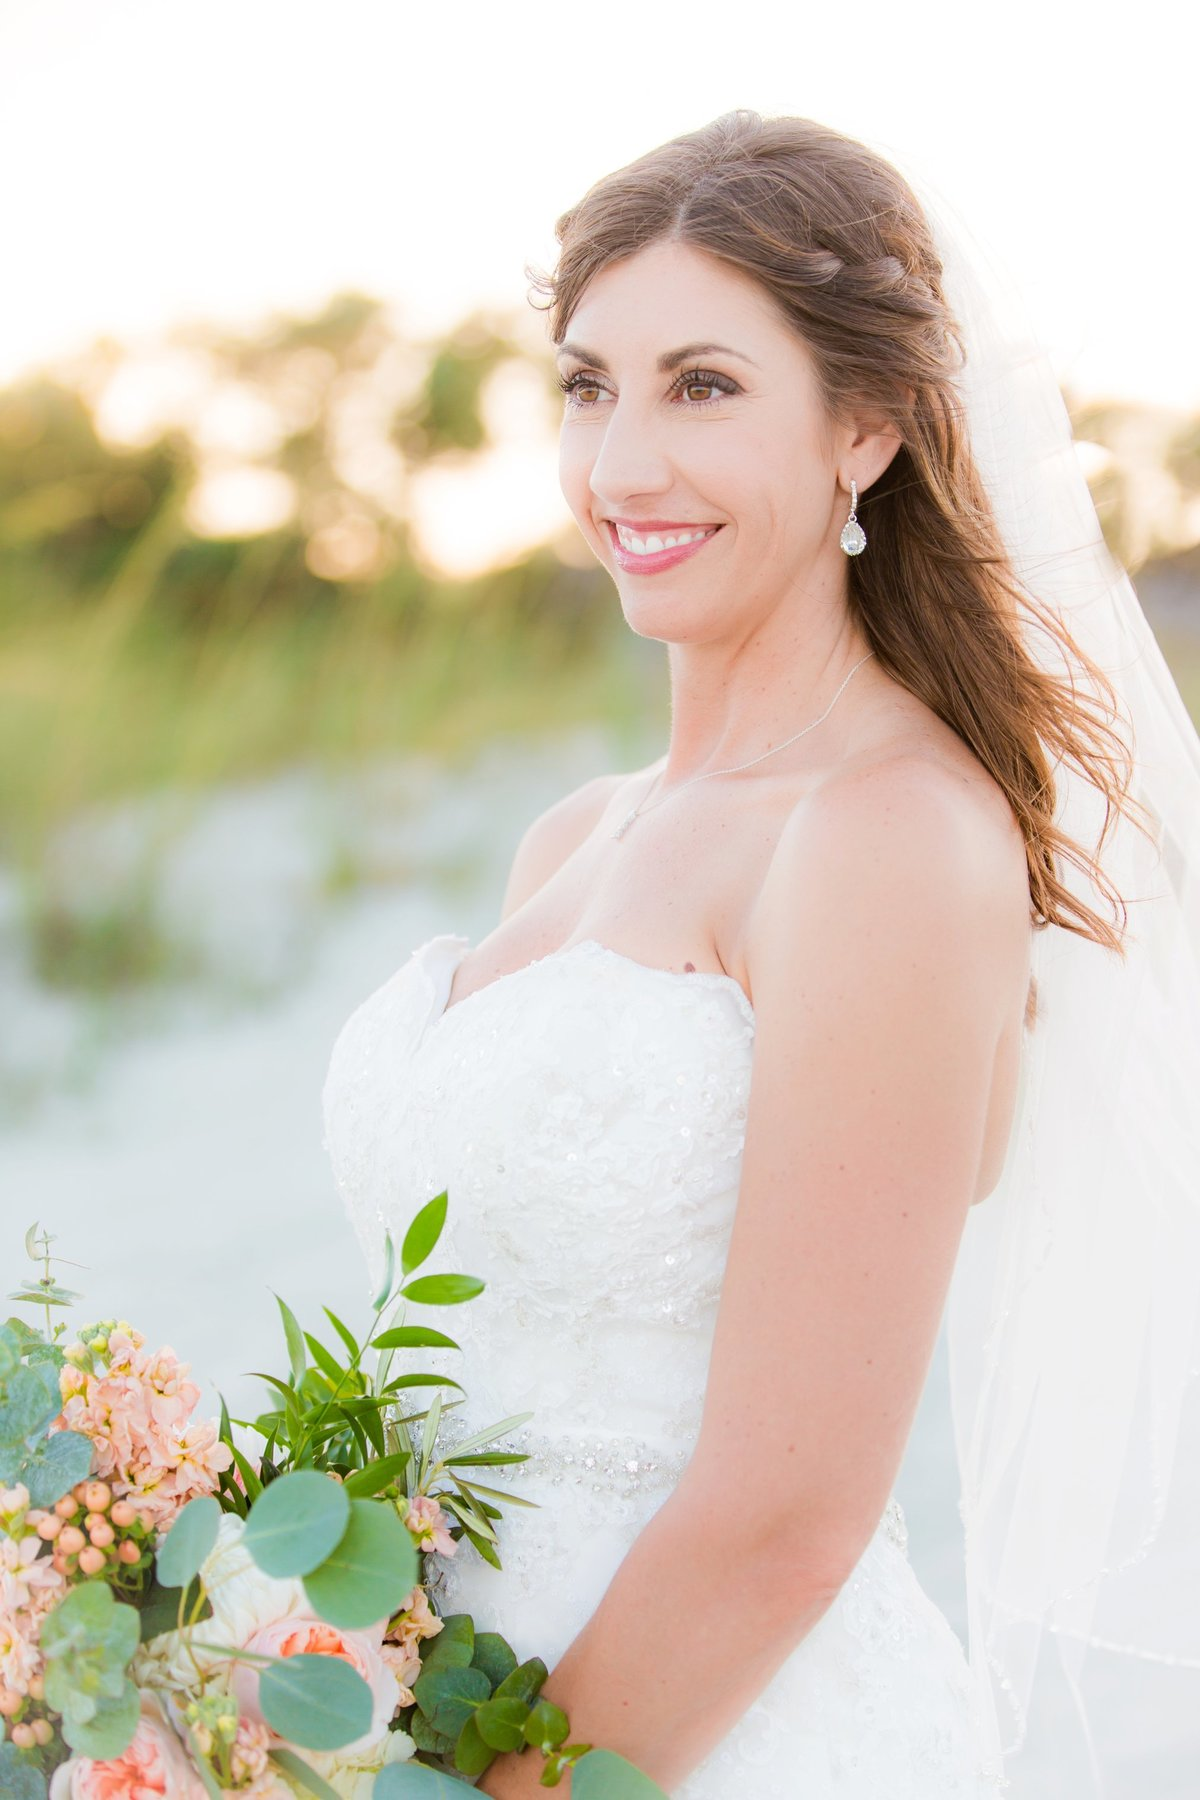 Hilton Head Island Weddings by Sylvia Schutz Photography at the Shipyard Beach Club www.sylviaschutzphotography.com